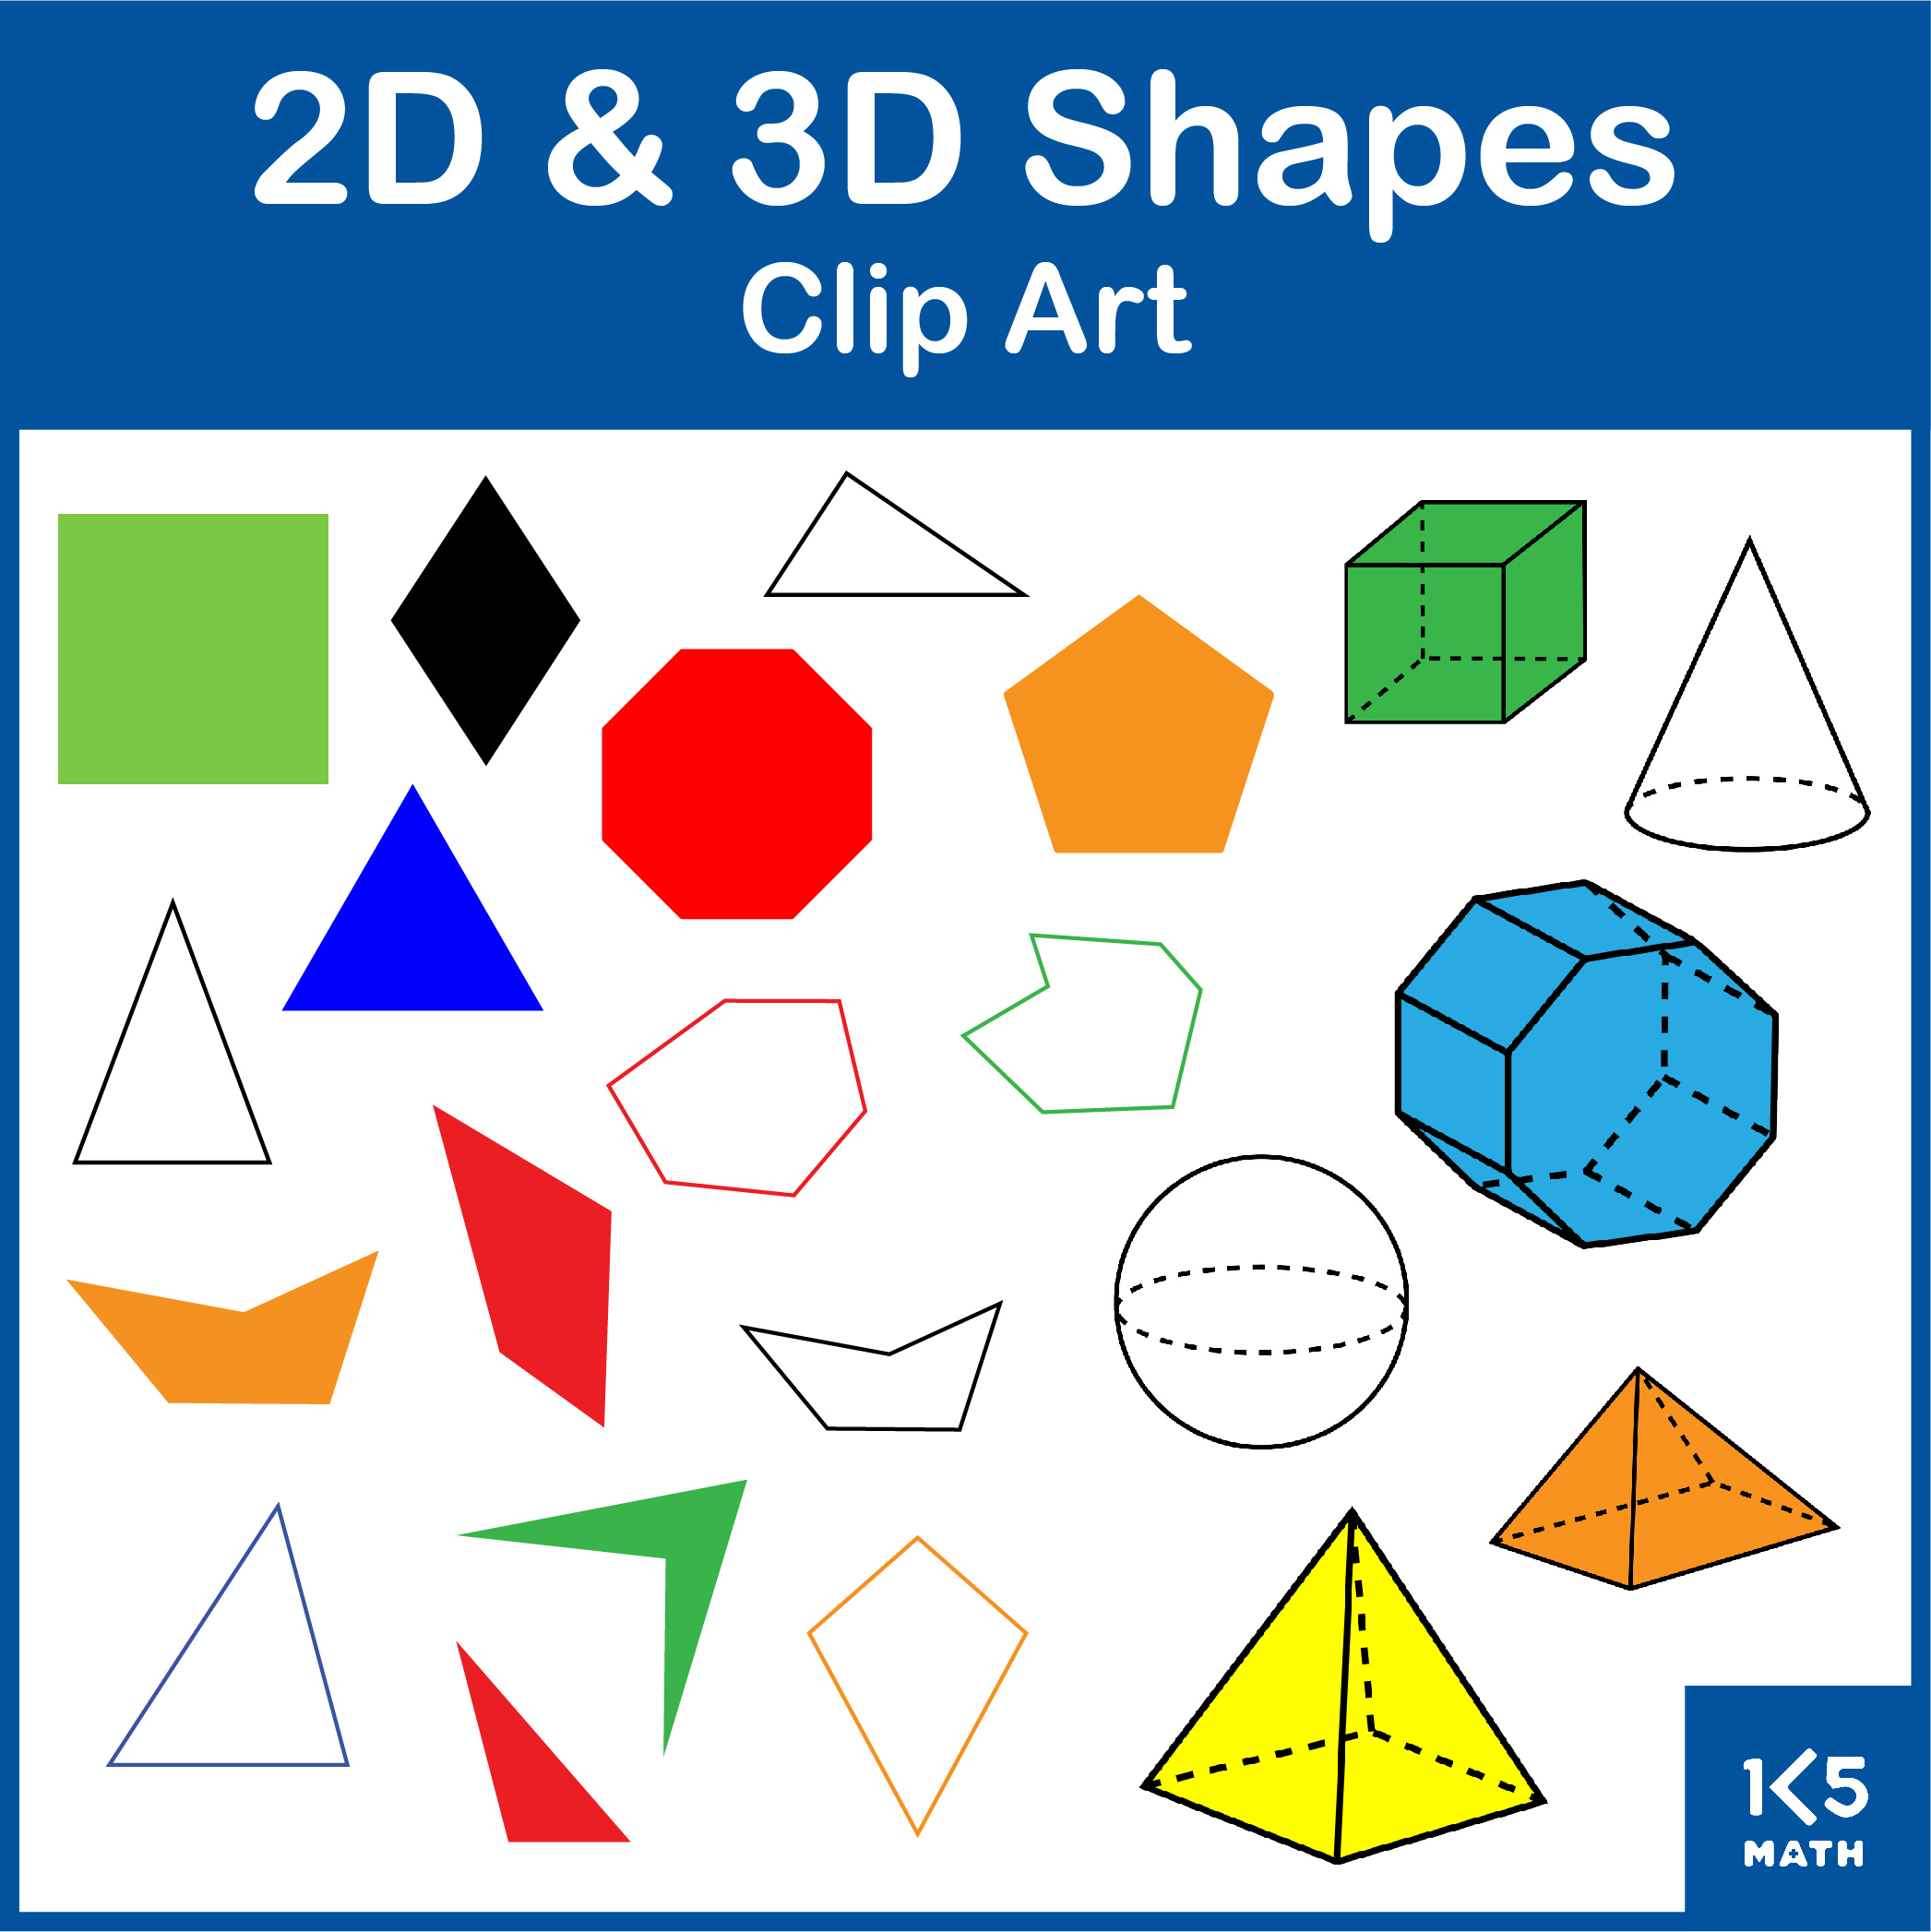 2D and 3D Shapes Clip Art